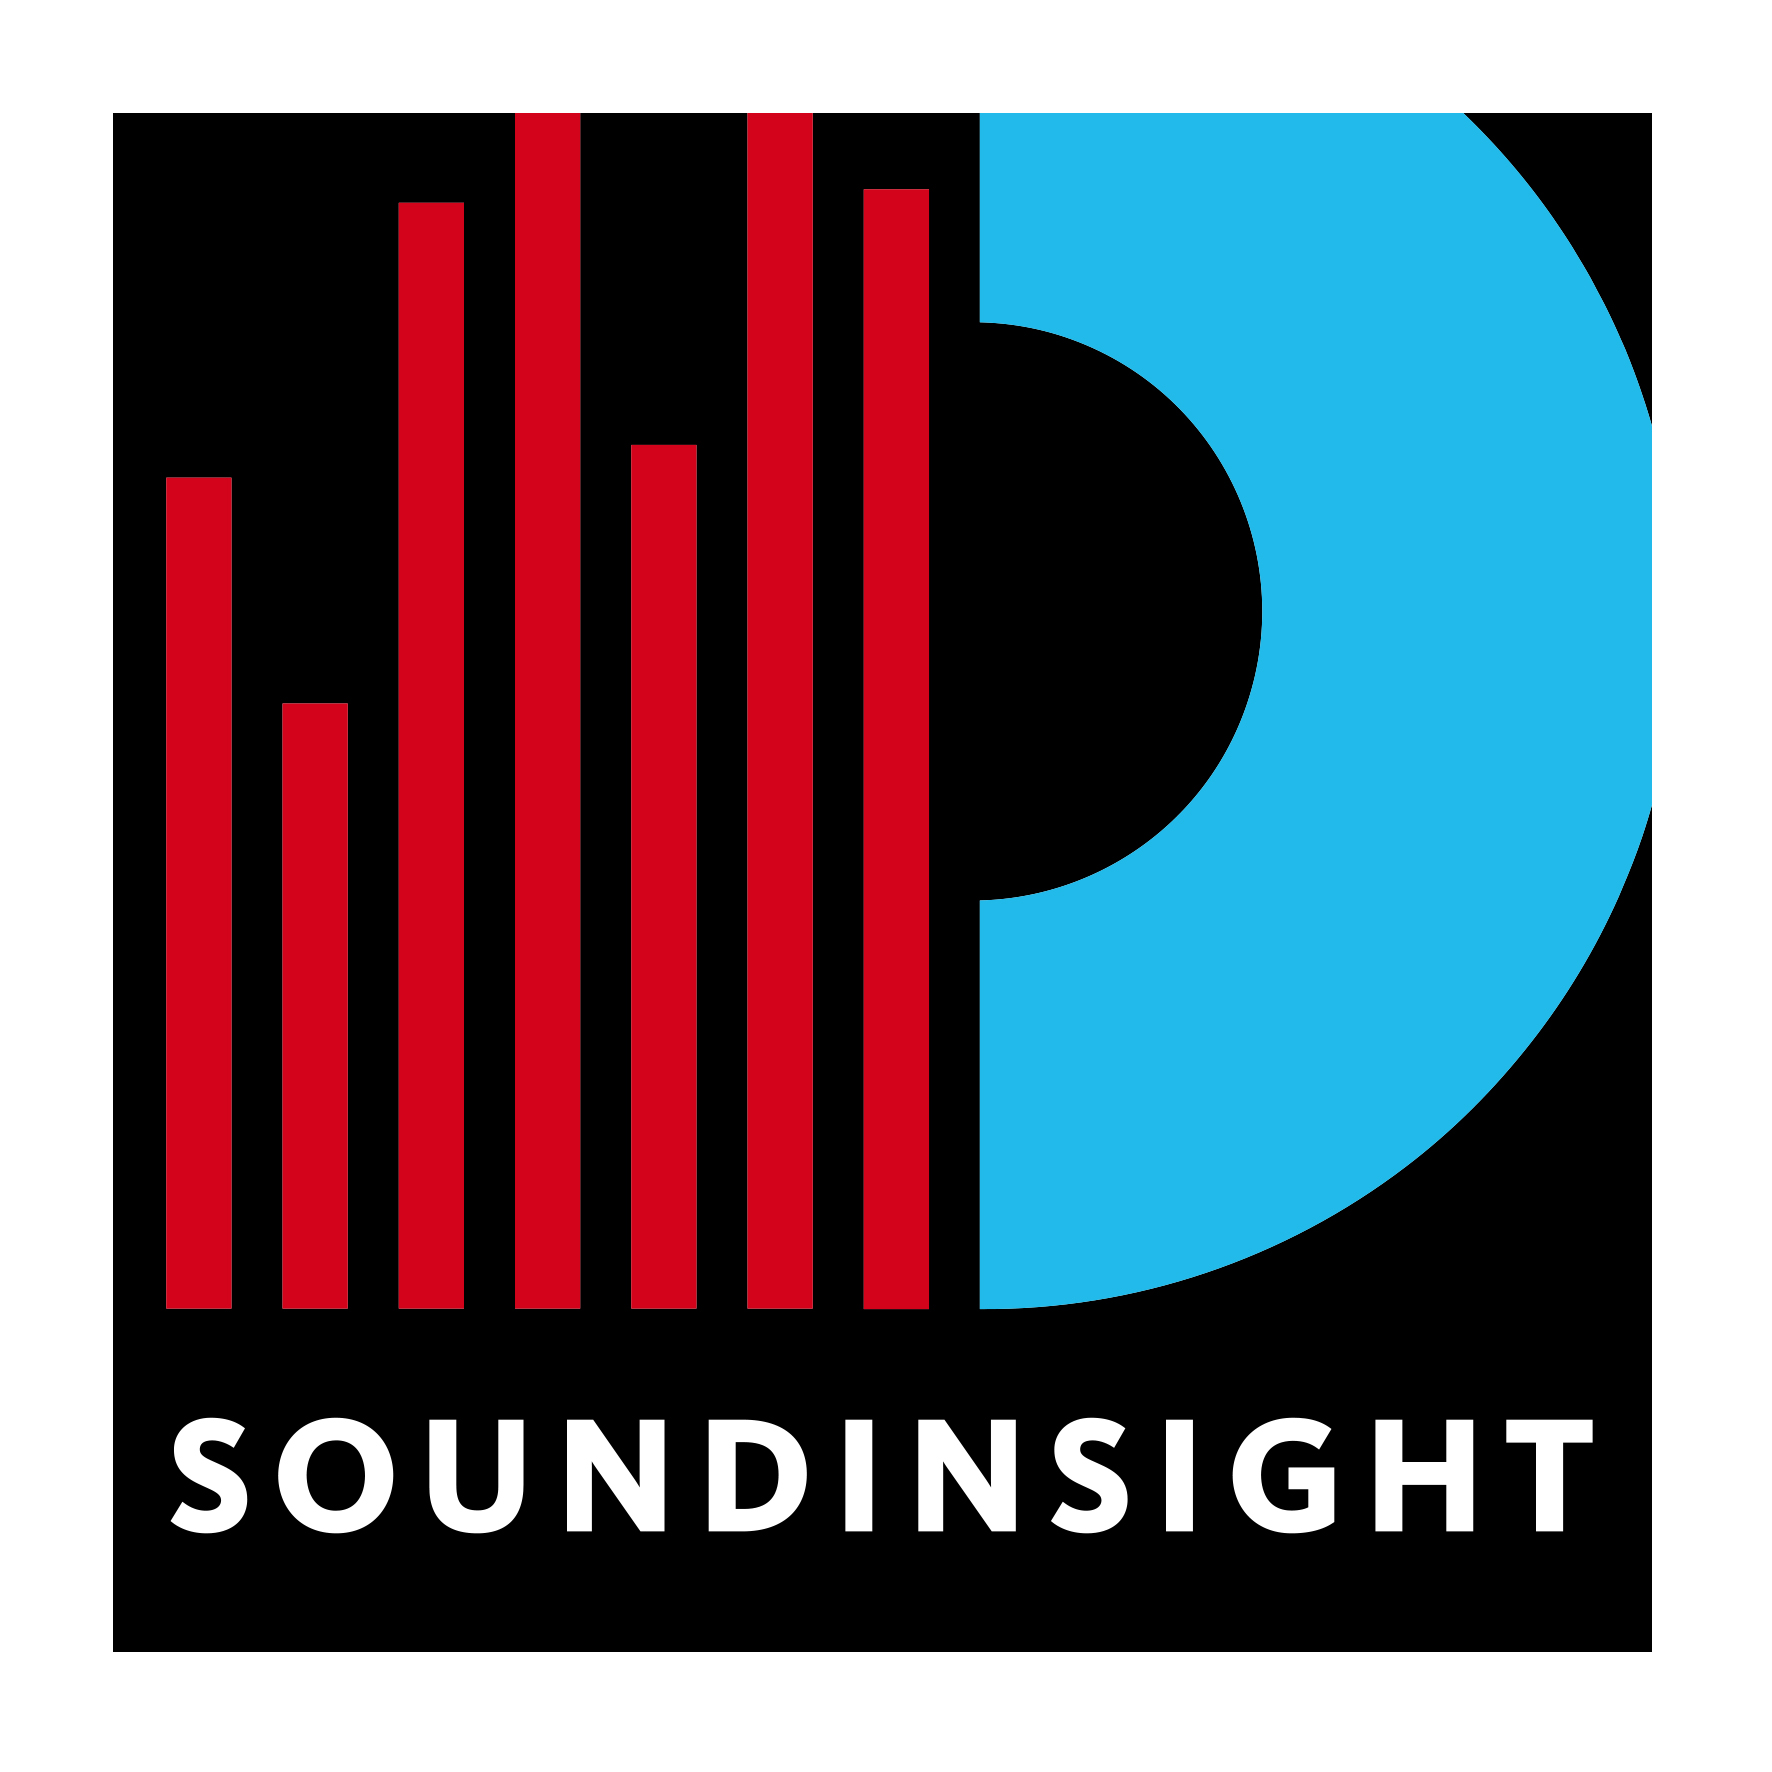 Soundinsight BV